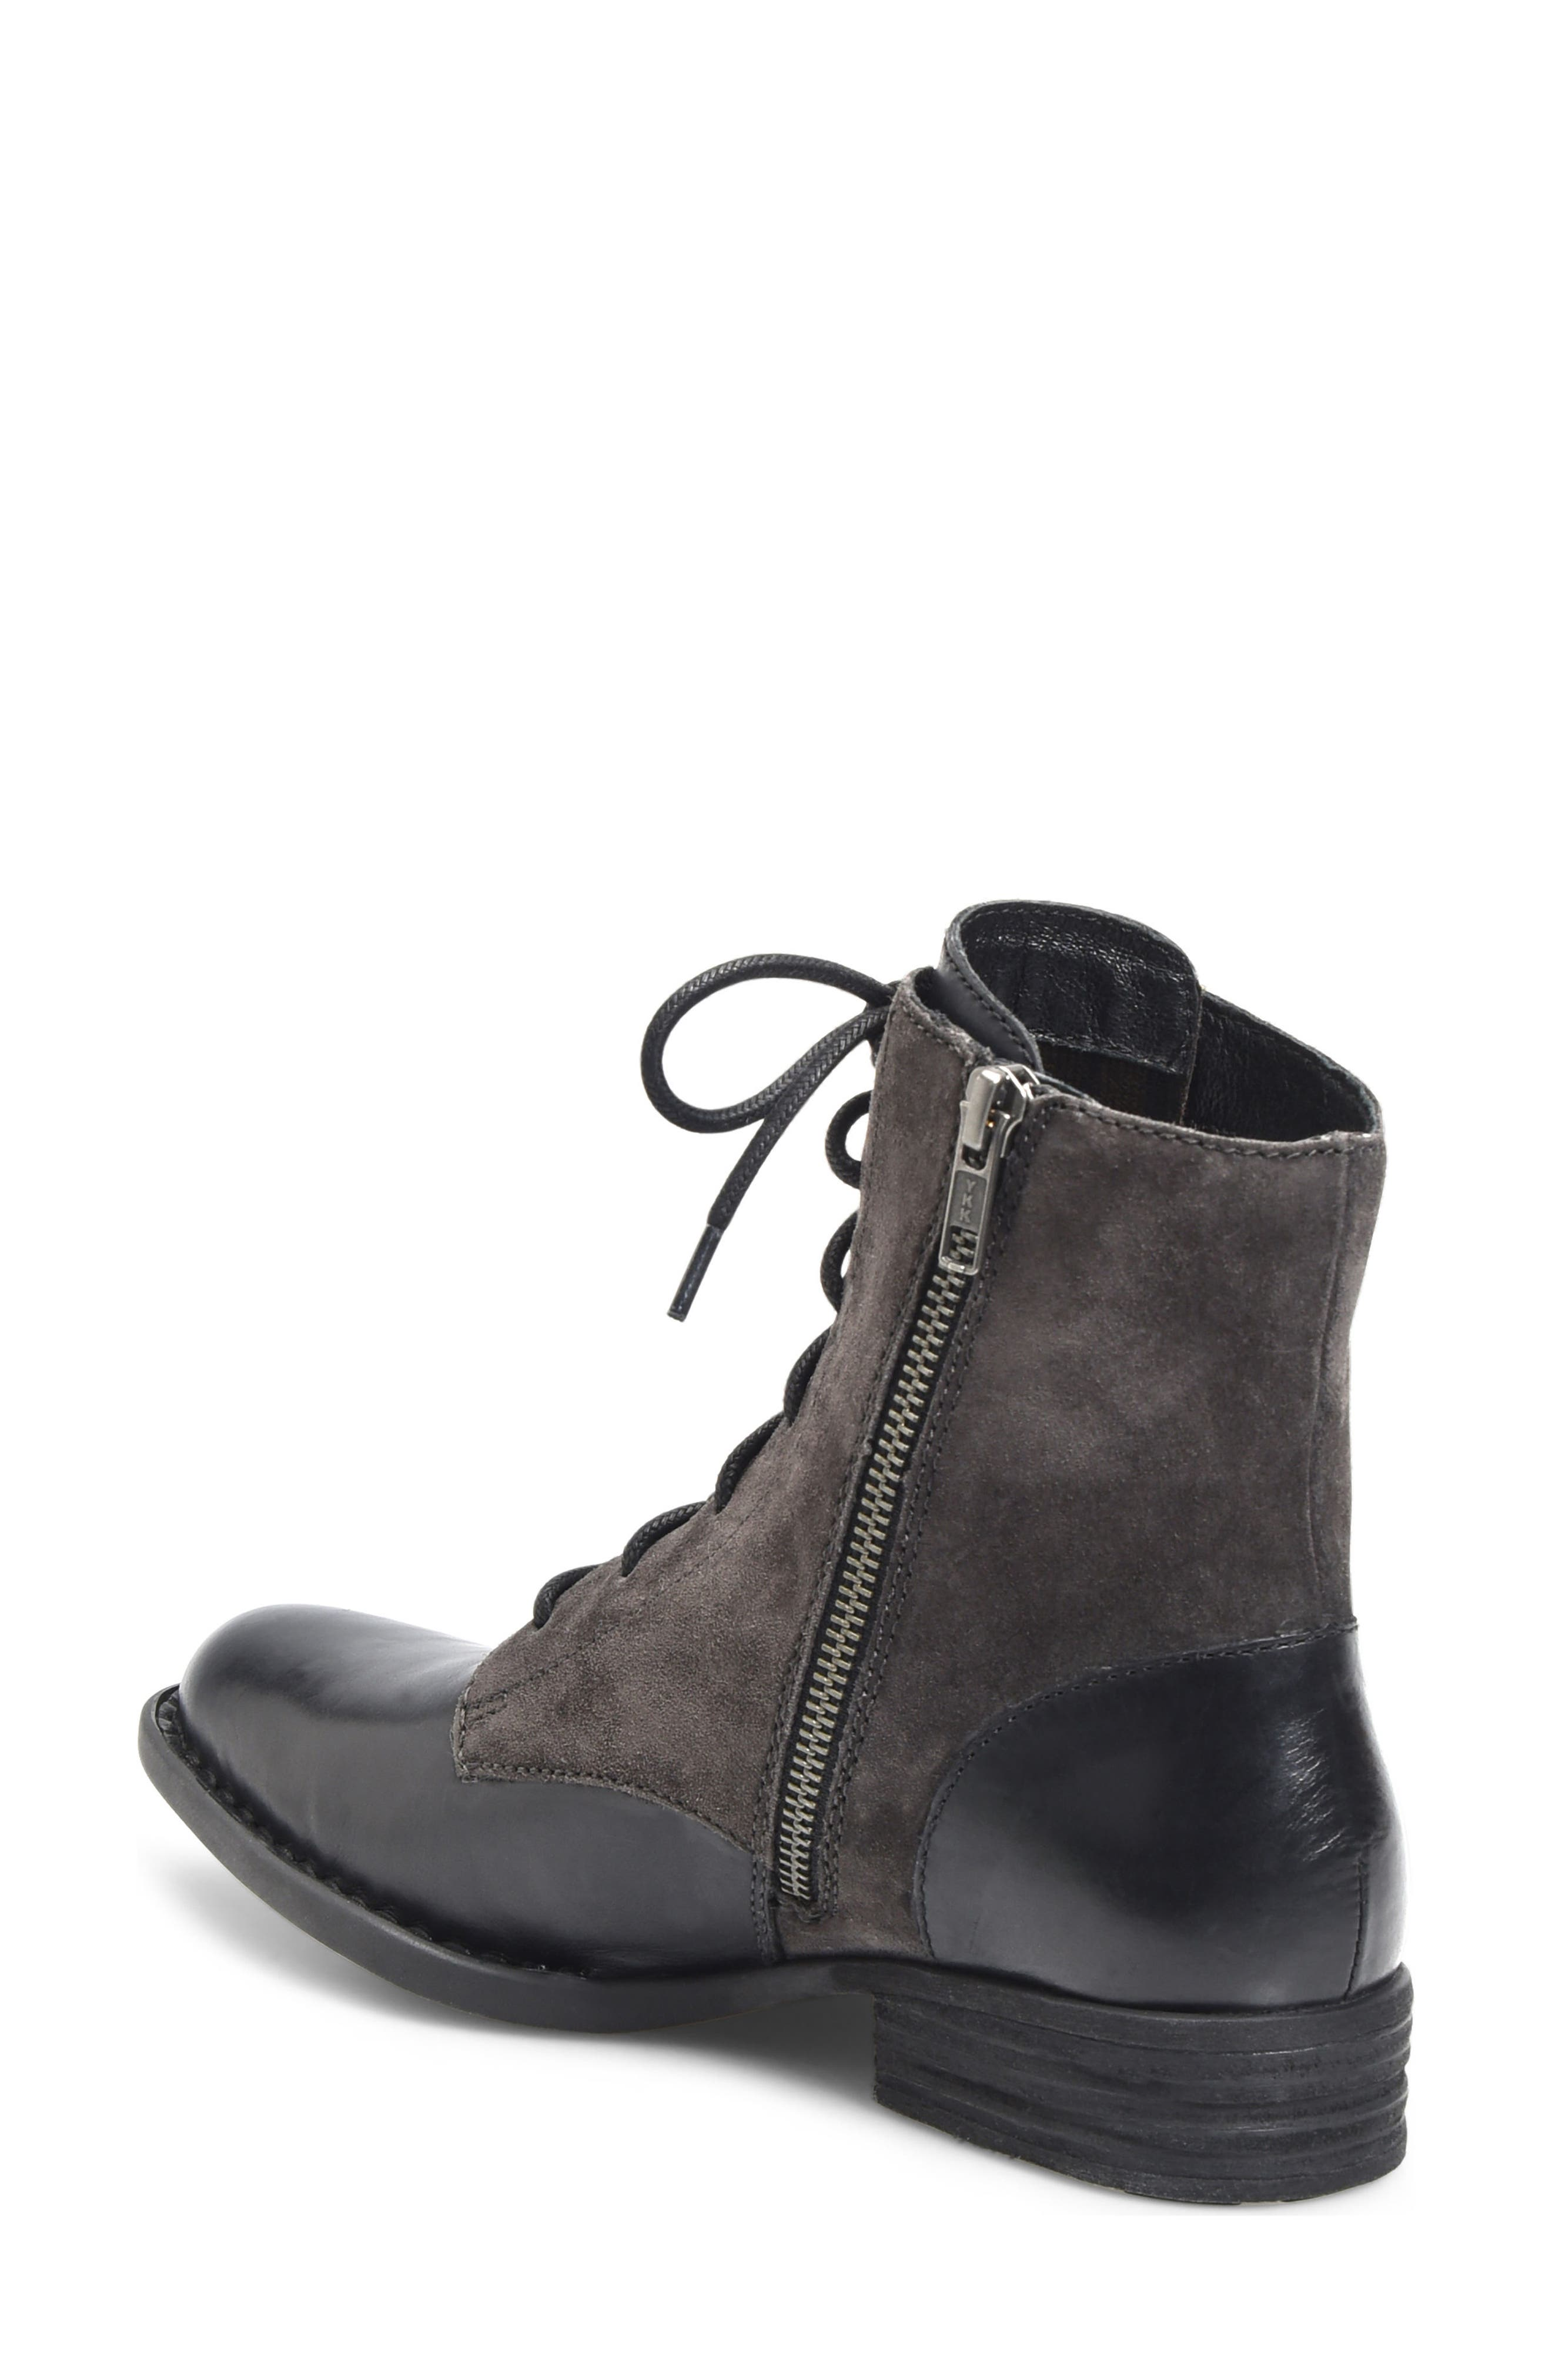 Alternate Image 2  - Børn Clements Lace-Up Boot (Women)